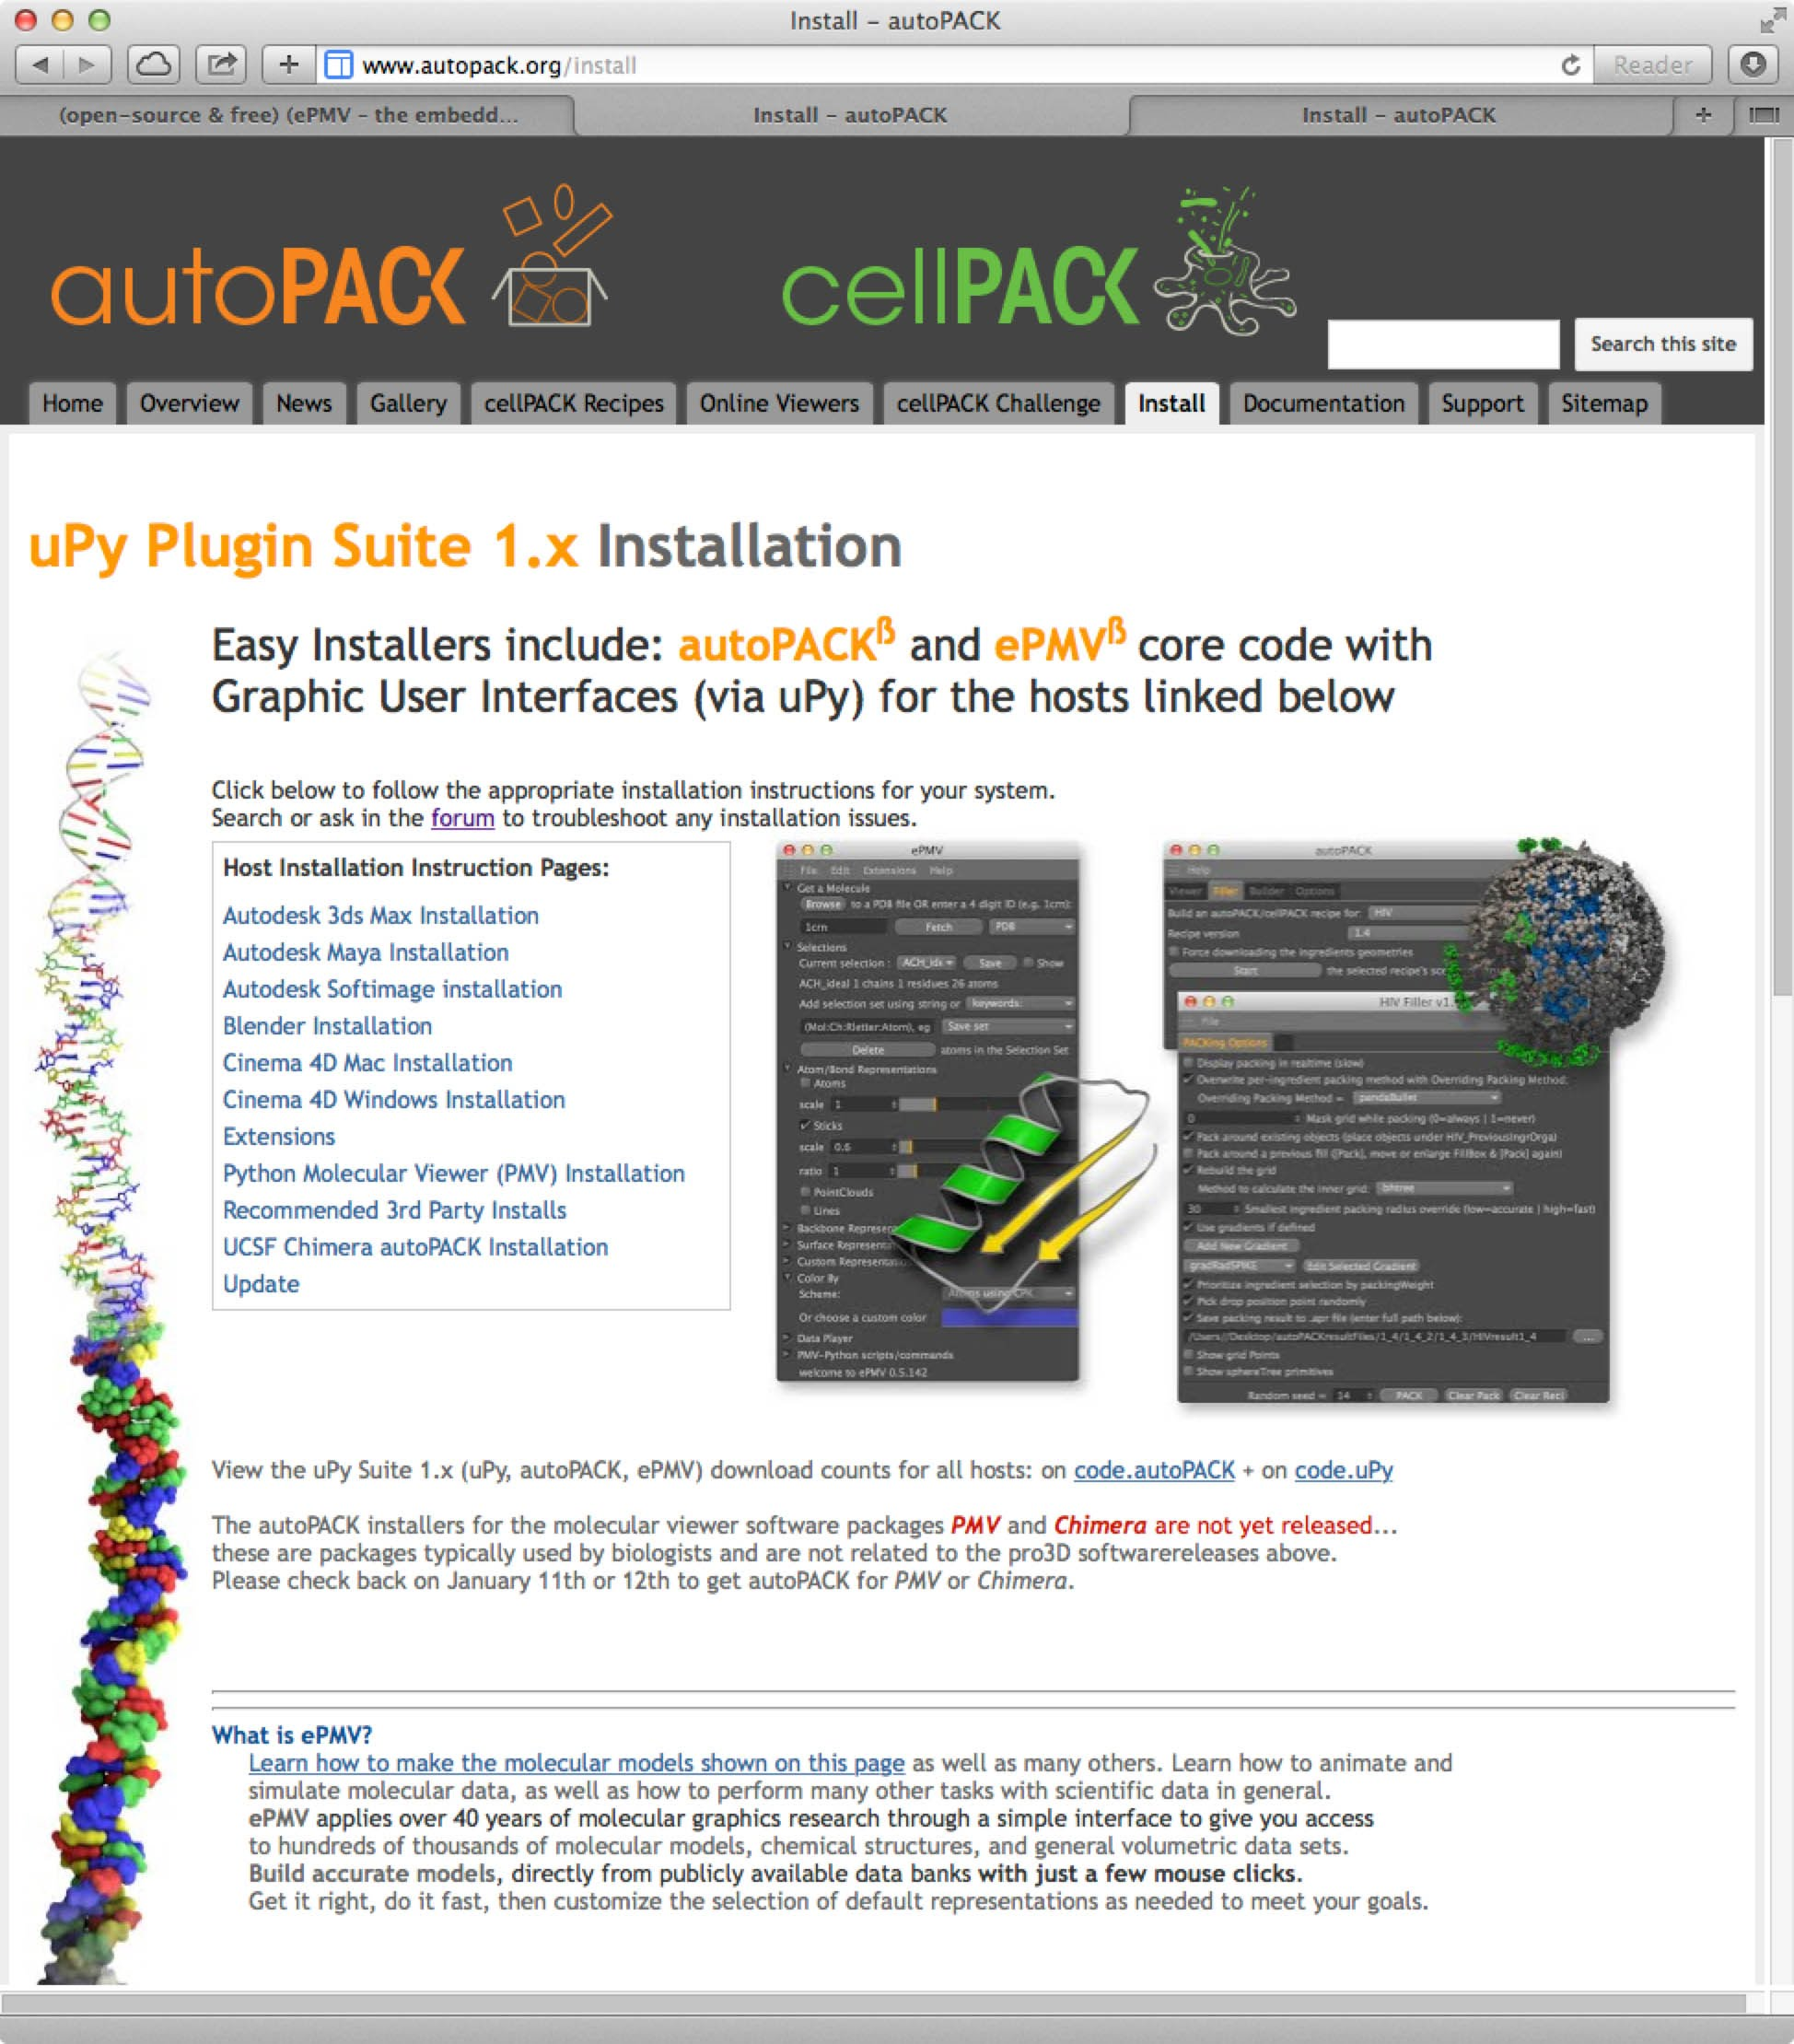 http://www.autopack.org/install